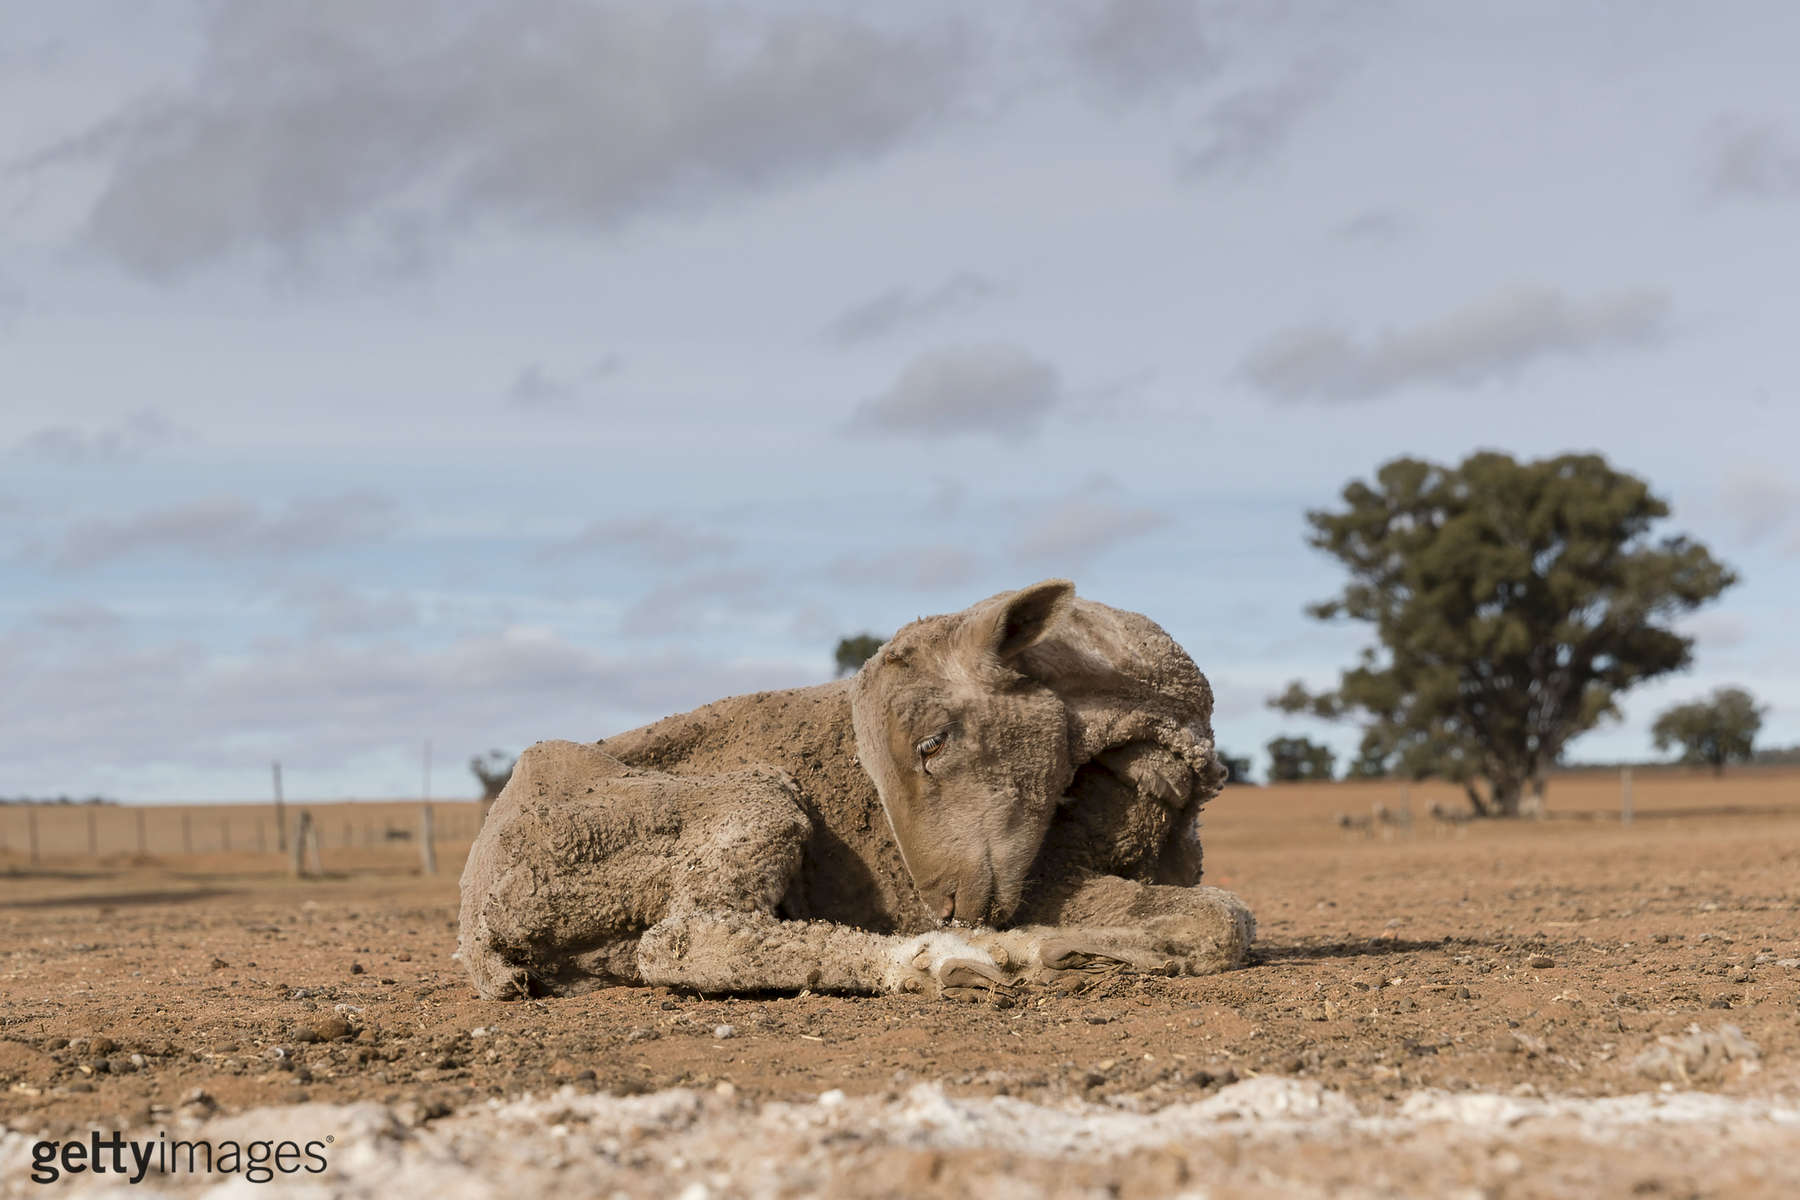 COONABARABRAN , NEW SOUTH WALES - JUNE 20:  A sheep to weak to eat a feed of cotton seed on the Jerry family farm 'Marlborough', 40 km outside Coonabarabran. The New South Wales State government recently approved an emergency drought relief package of A$600m, of which at least A$250m is allocated for low interest loans to assist eligible farm businesses to recover. The package has been welcomed, though in the words of a local farmer {quote}it barely touches the sides{quote}. Now with the real prospect of a dry El-Nino weather pattern hitting the state in Spring, the longer term outlook for rain here is dire. June 20, 2018 in Coonabarabran, Australia.  (Photo by Brook Mitchell/Getty Images)